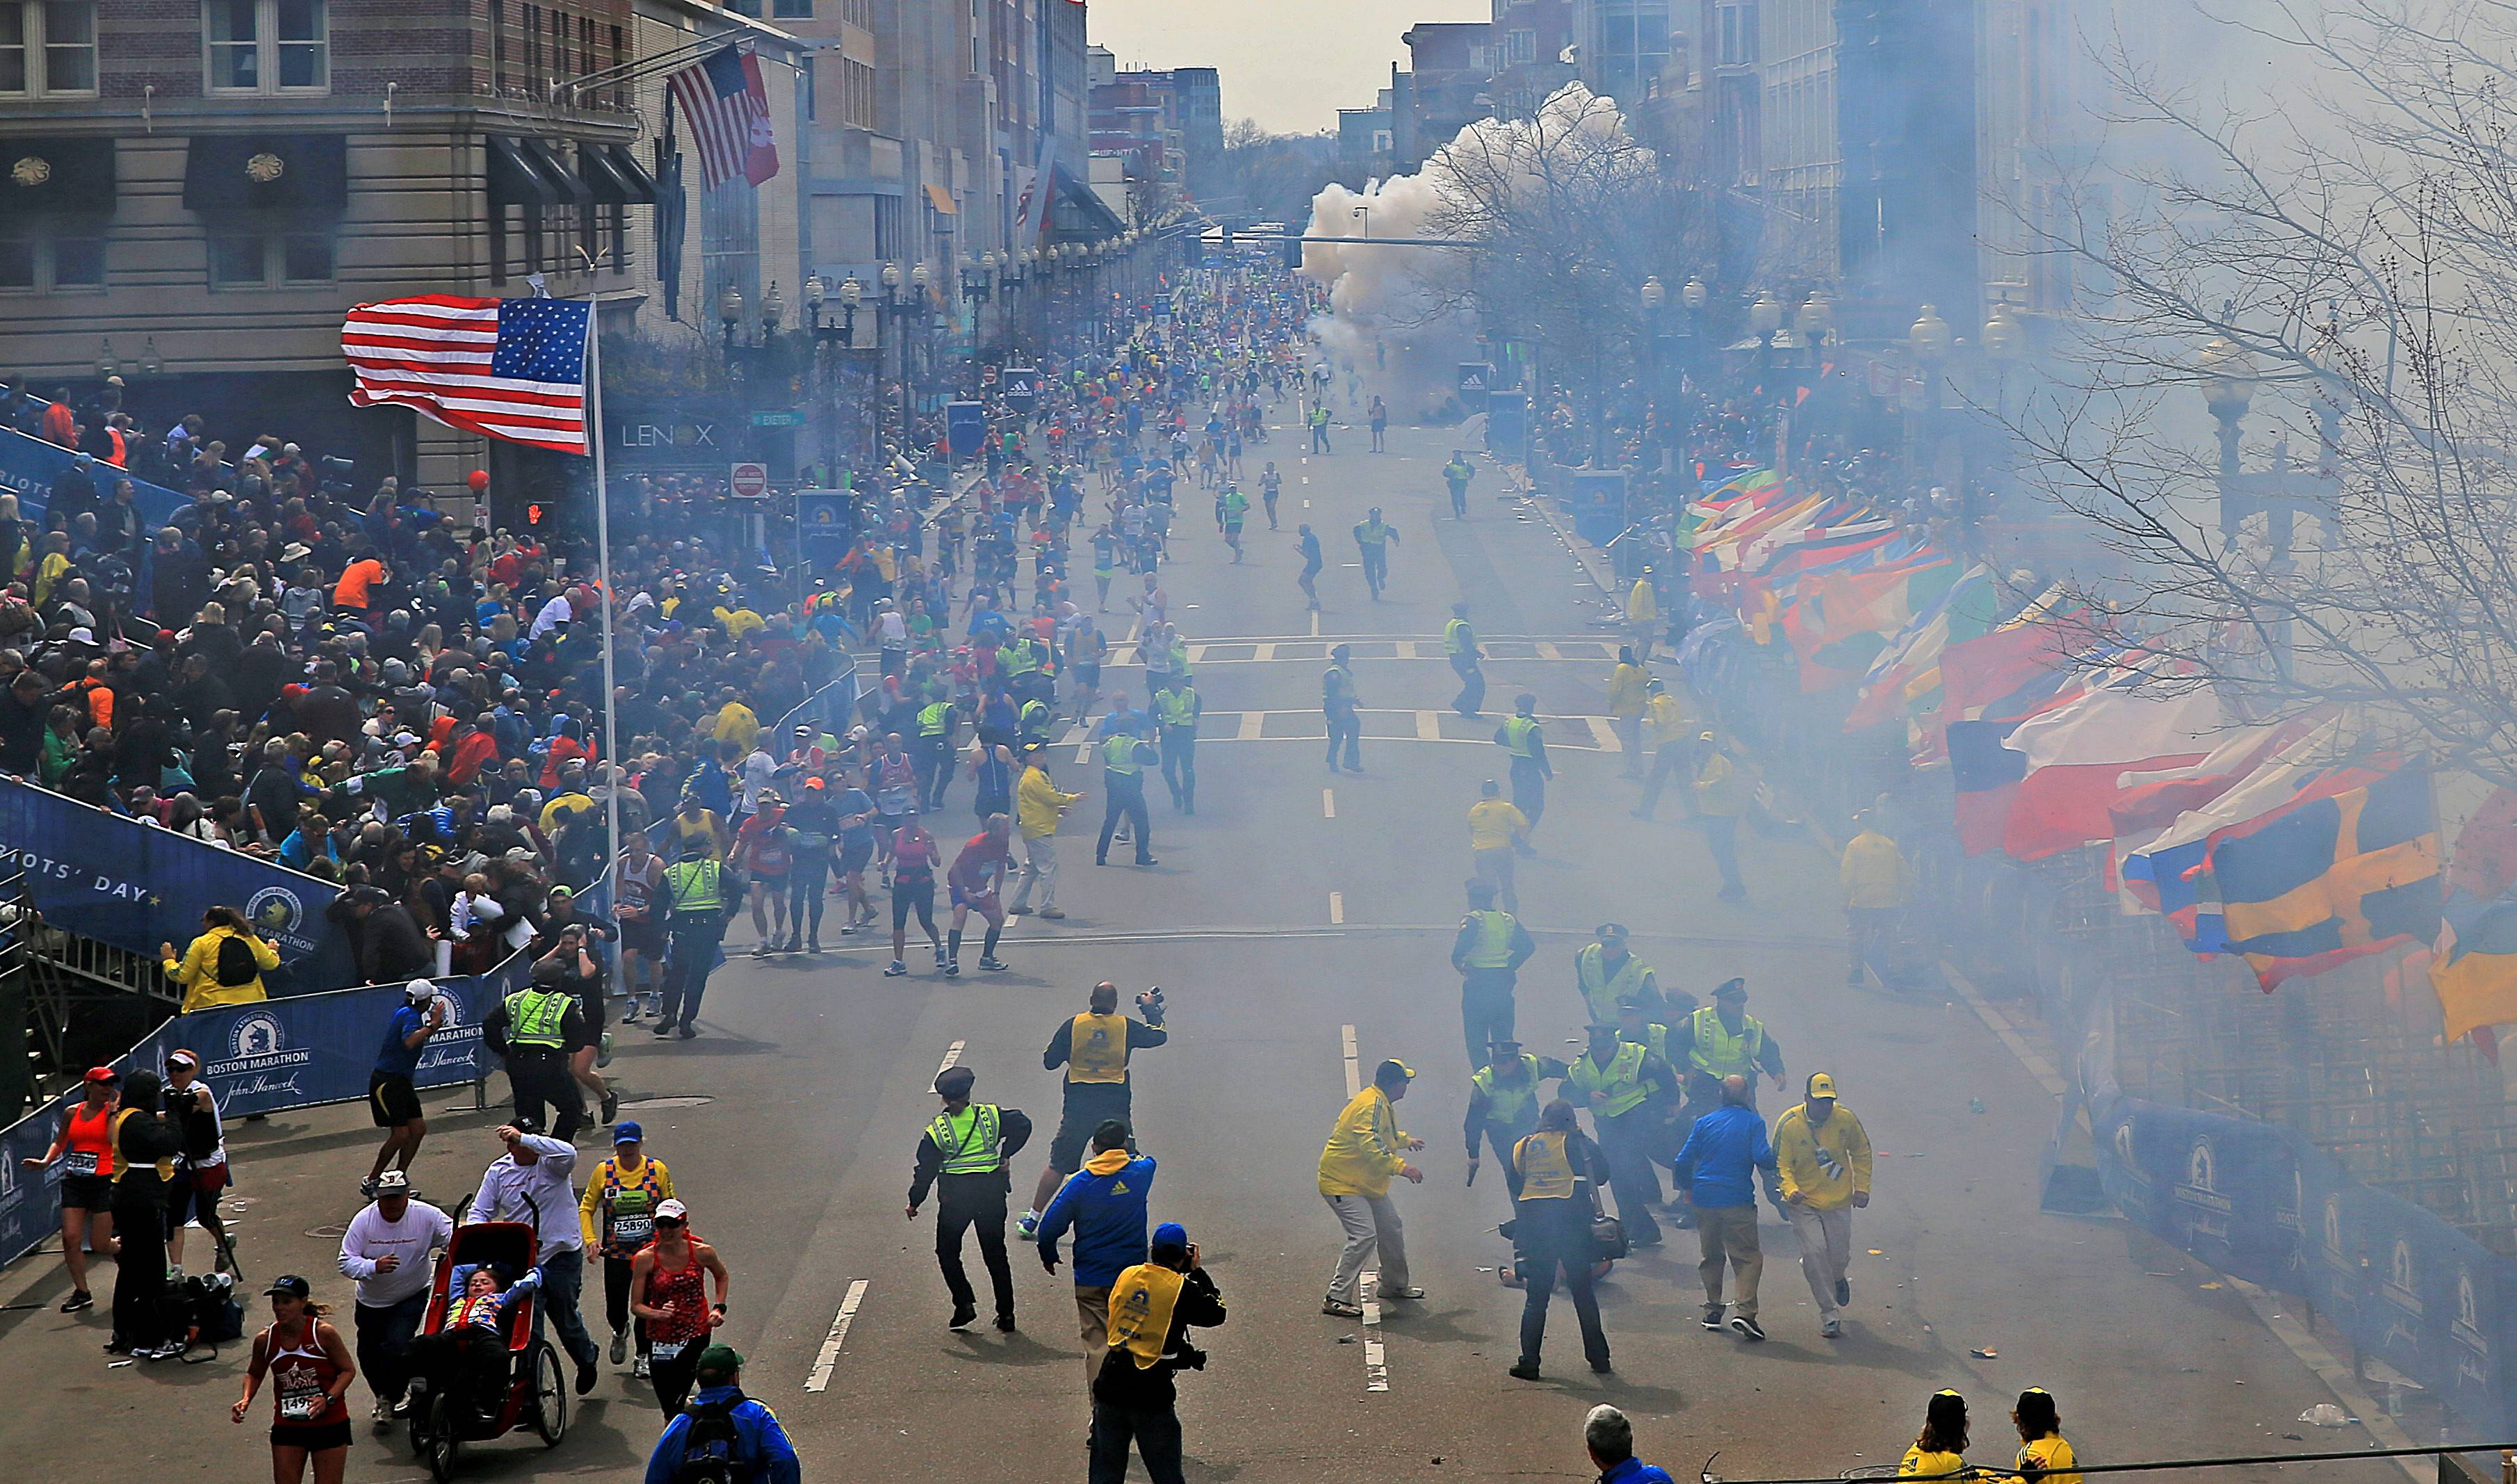 People react as an explosion goes off near the finish line of the Boston Marathon on April 15, 2013. A year after the terror attack, some questions remain unanswered.